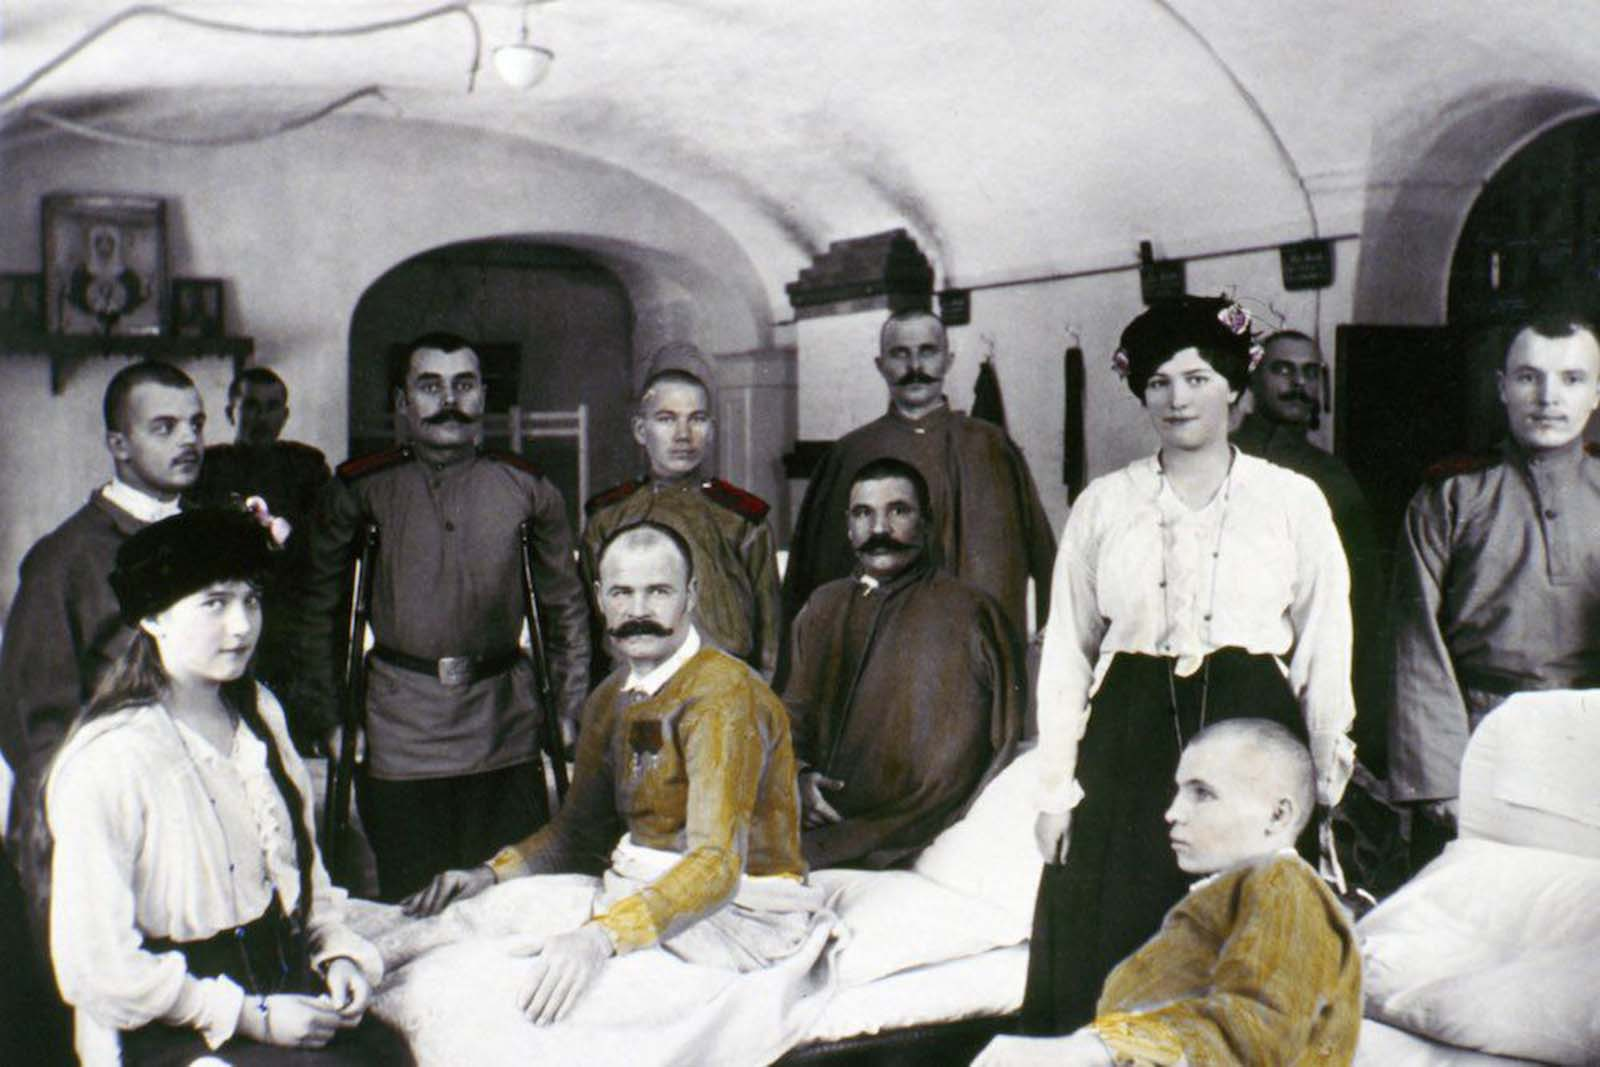 Anastasia (at left) and Maria visit wounded WWI soldiers in hospital.